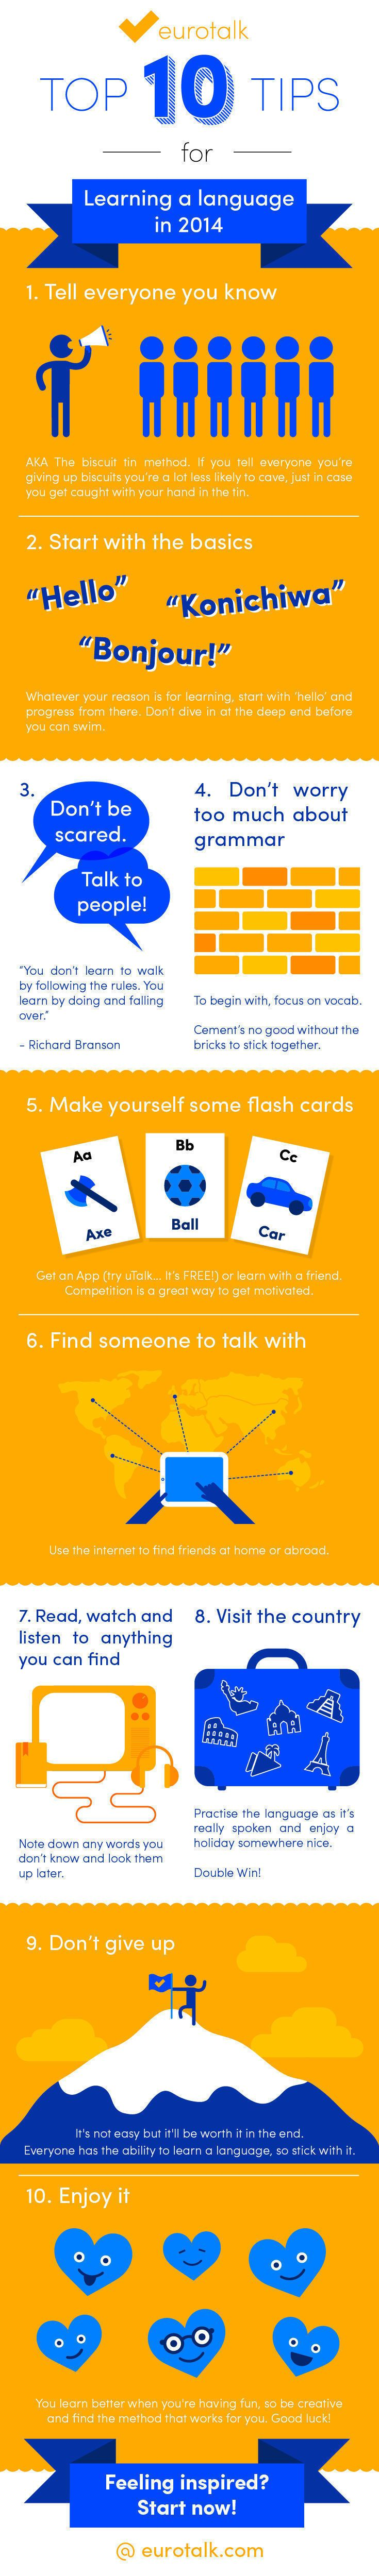 EuroTalk's Top 10 Tips for Learning a Language in 2014